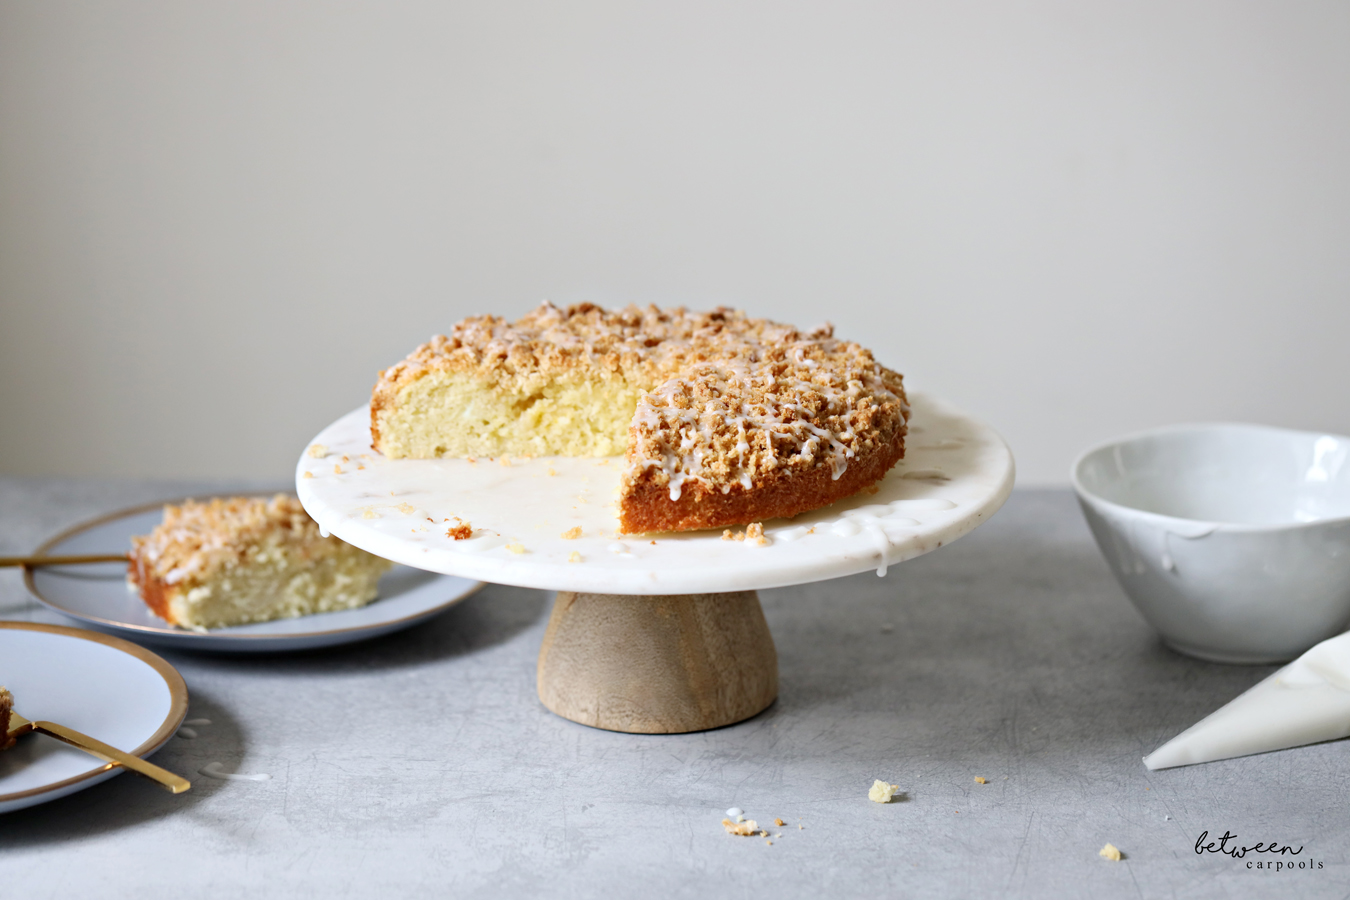 coconut crunch cake